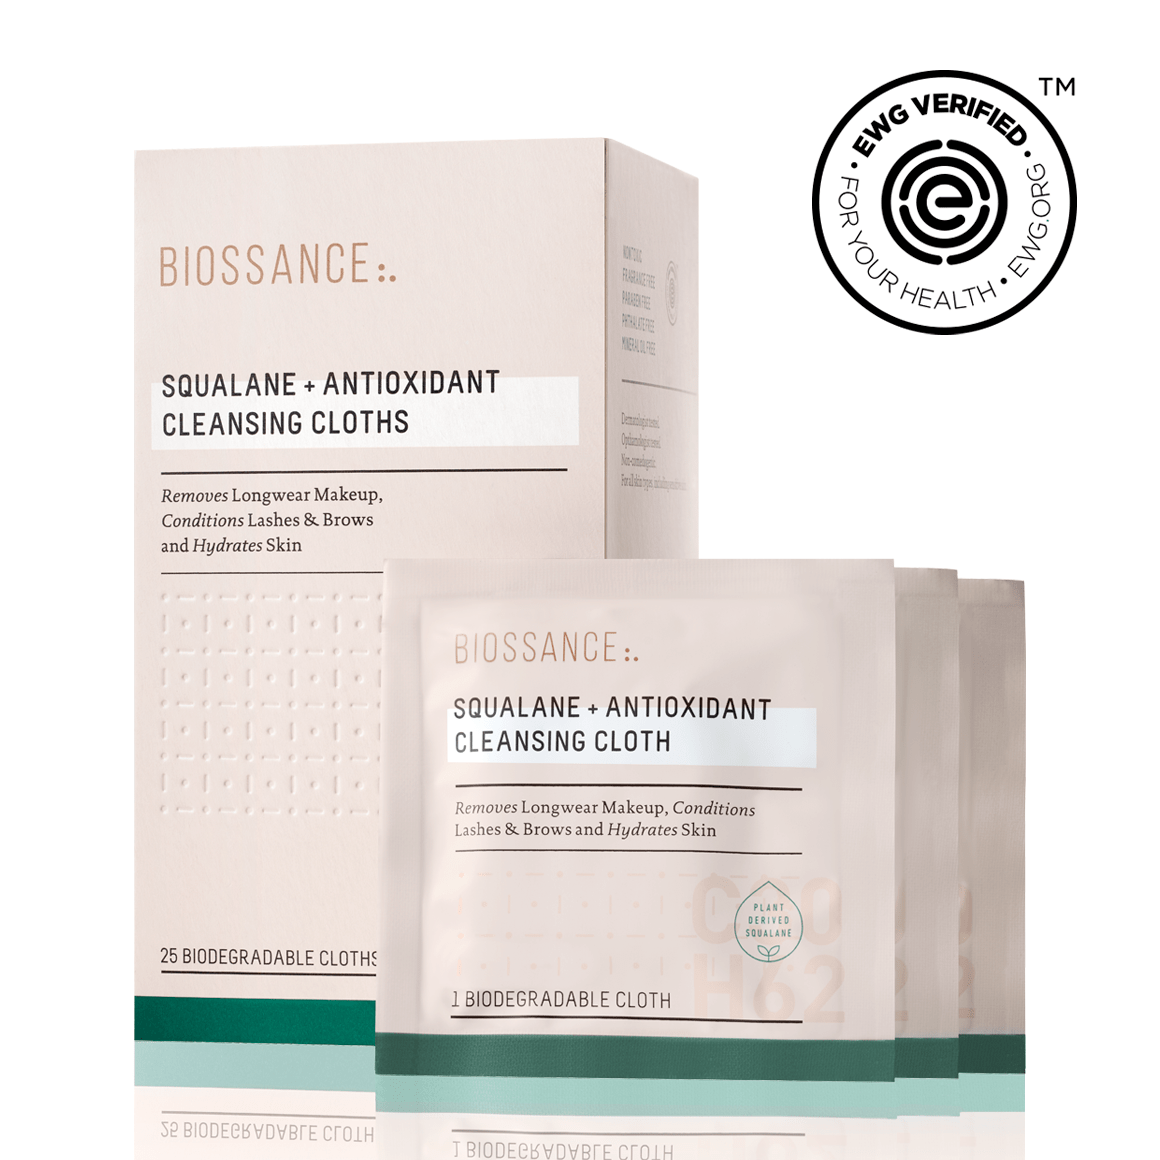 Squalane + Antioxidant Cleansing Cloths